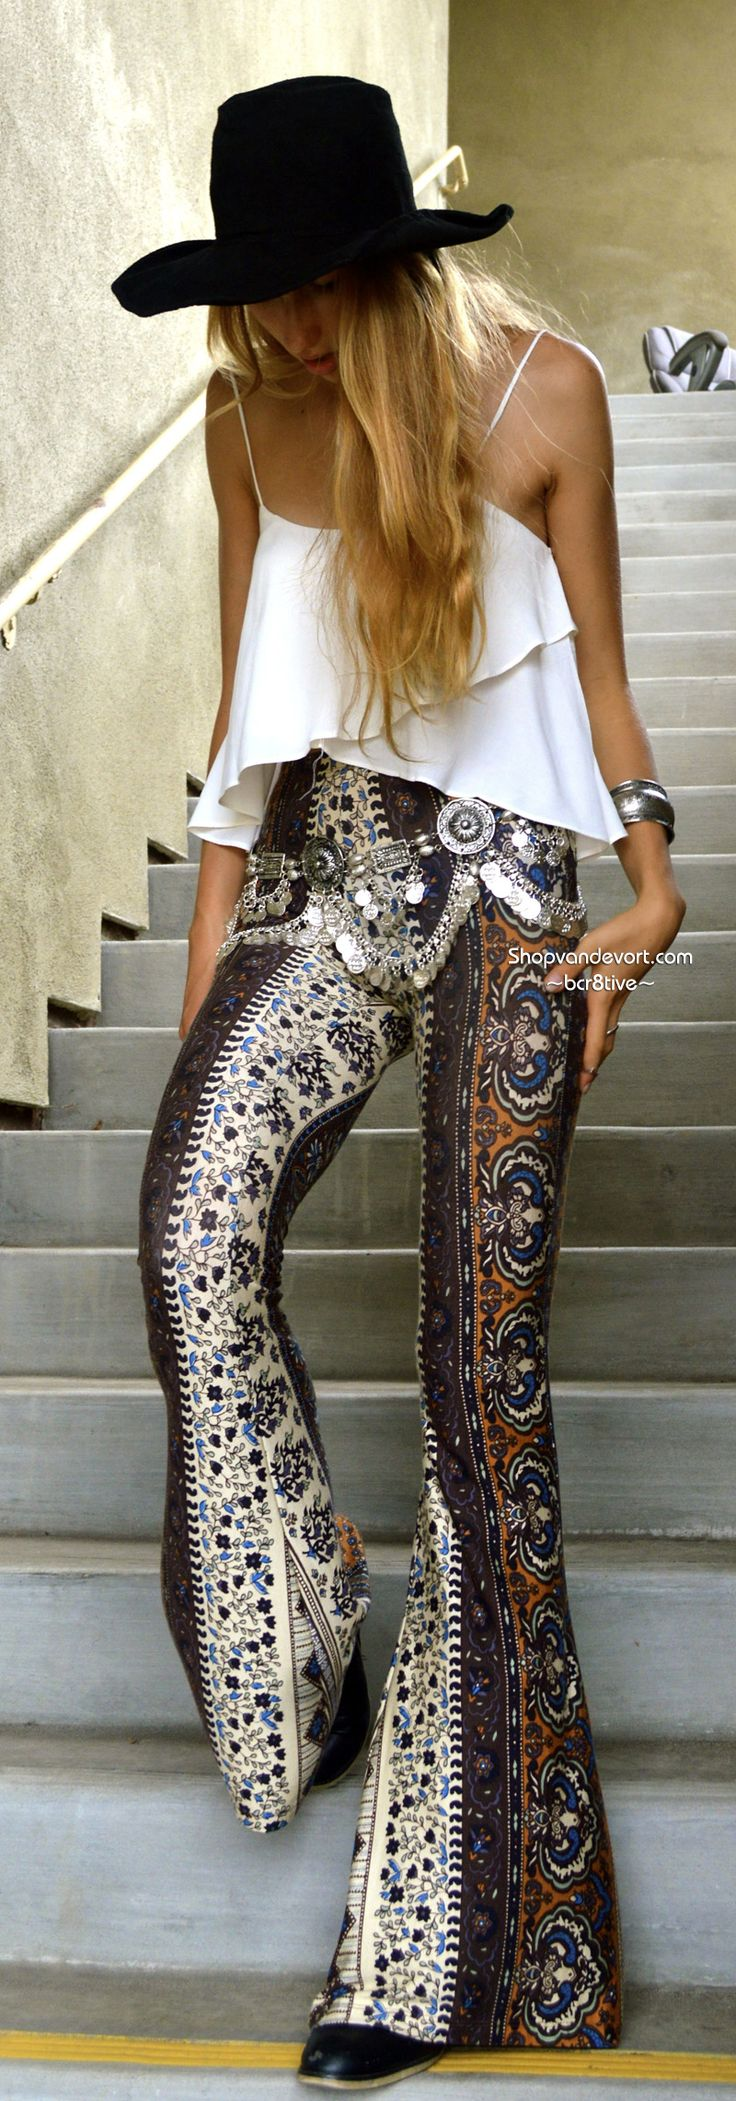 ☮ American Hippie Bohemian Style ~ Boho Palazzo Pants and Hat! LOVE this!!!!!!!